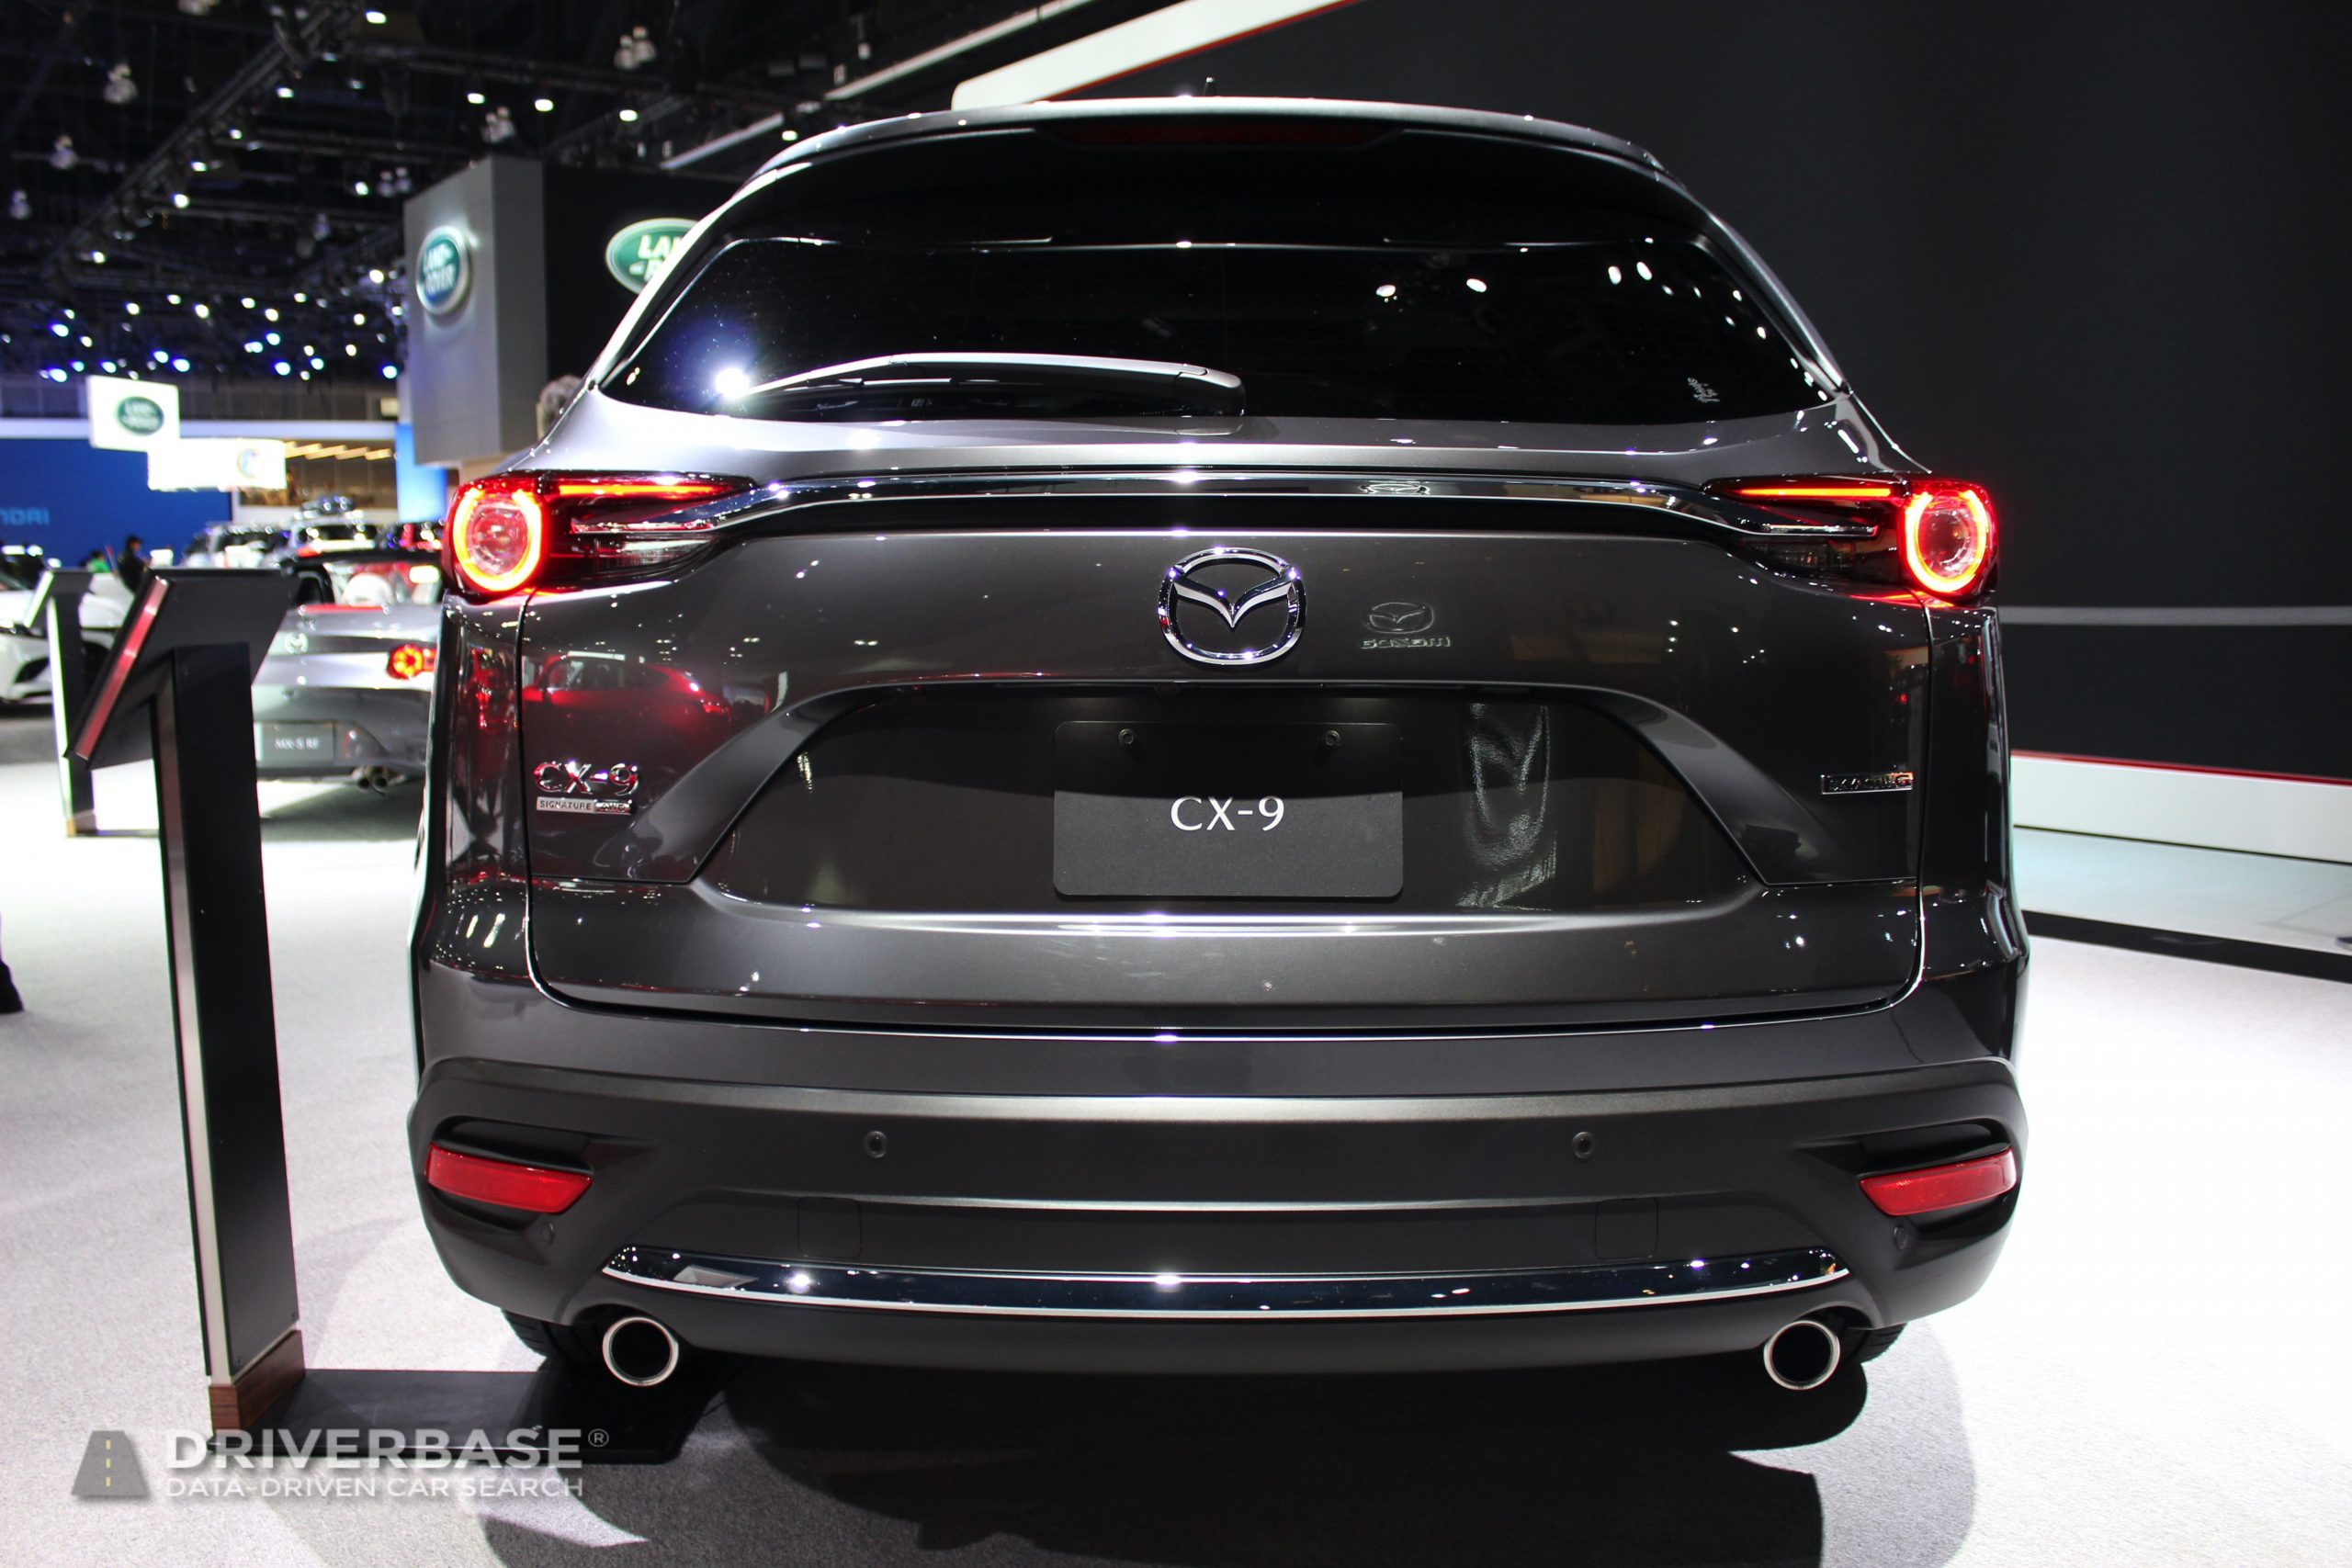 2020 Mazda CX-9 at the 2019 Los Angeles Auto Show